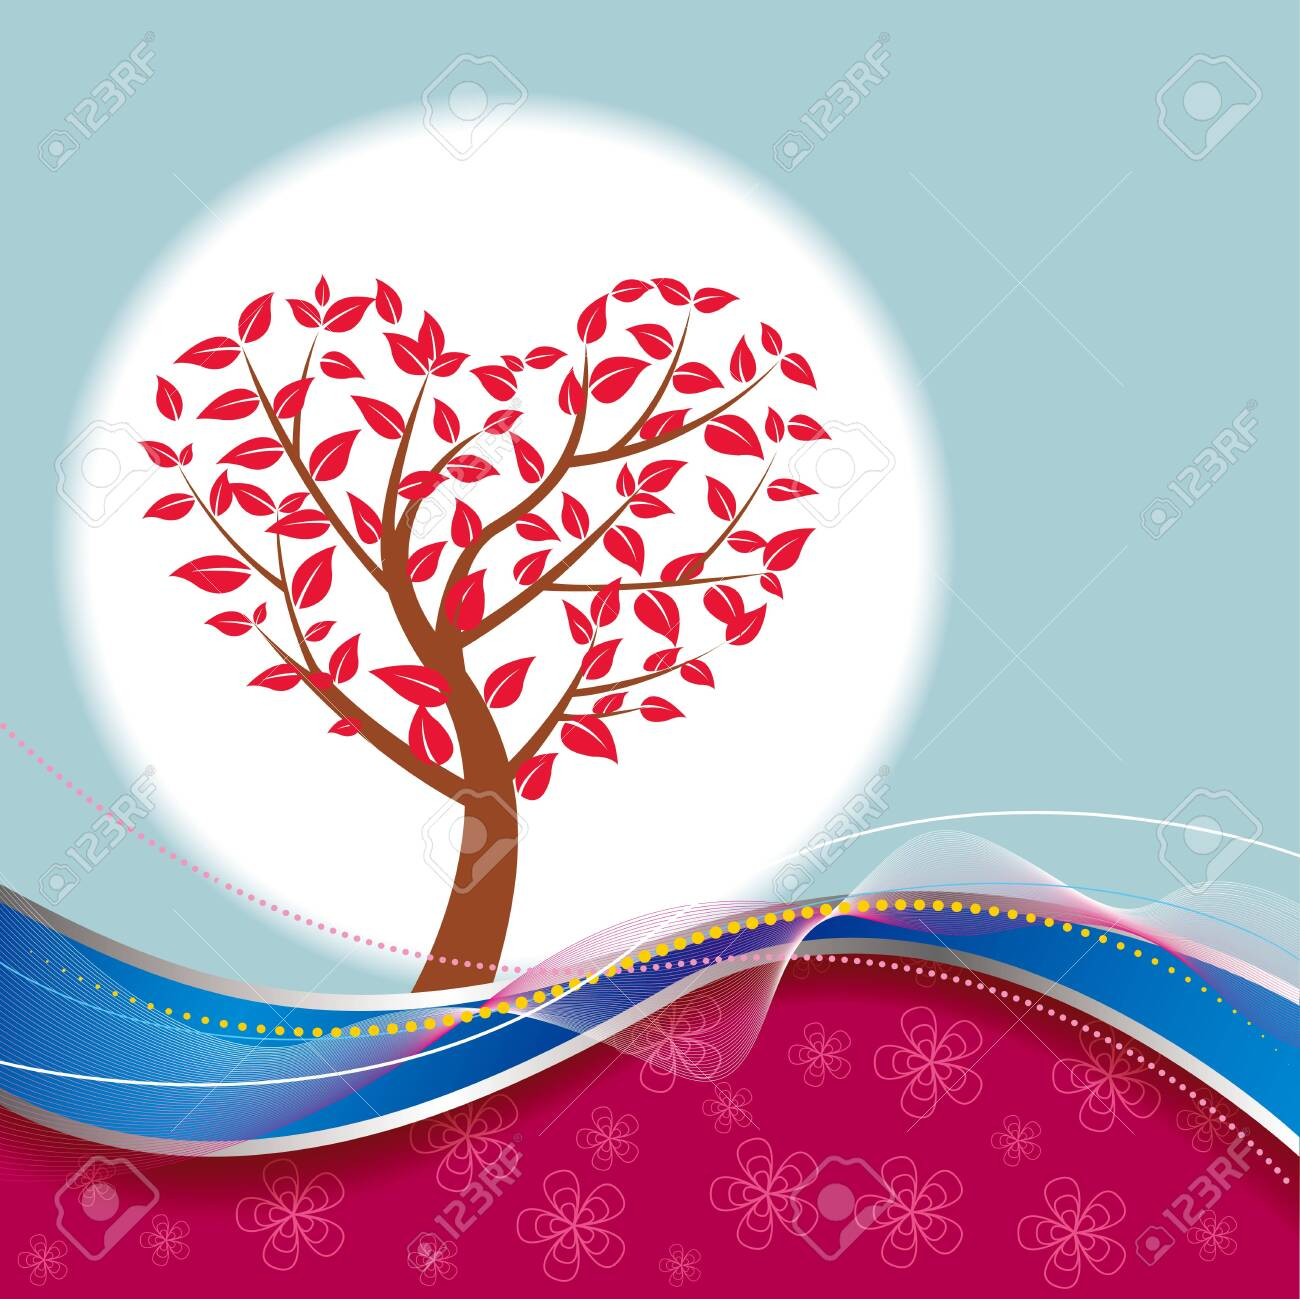 Heart shaped tree. Abstract background design. - 131417597